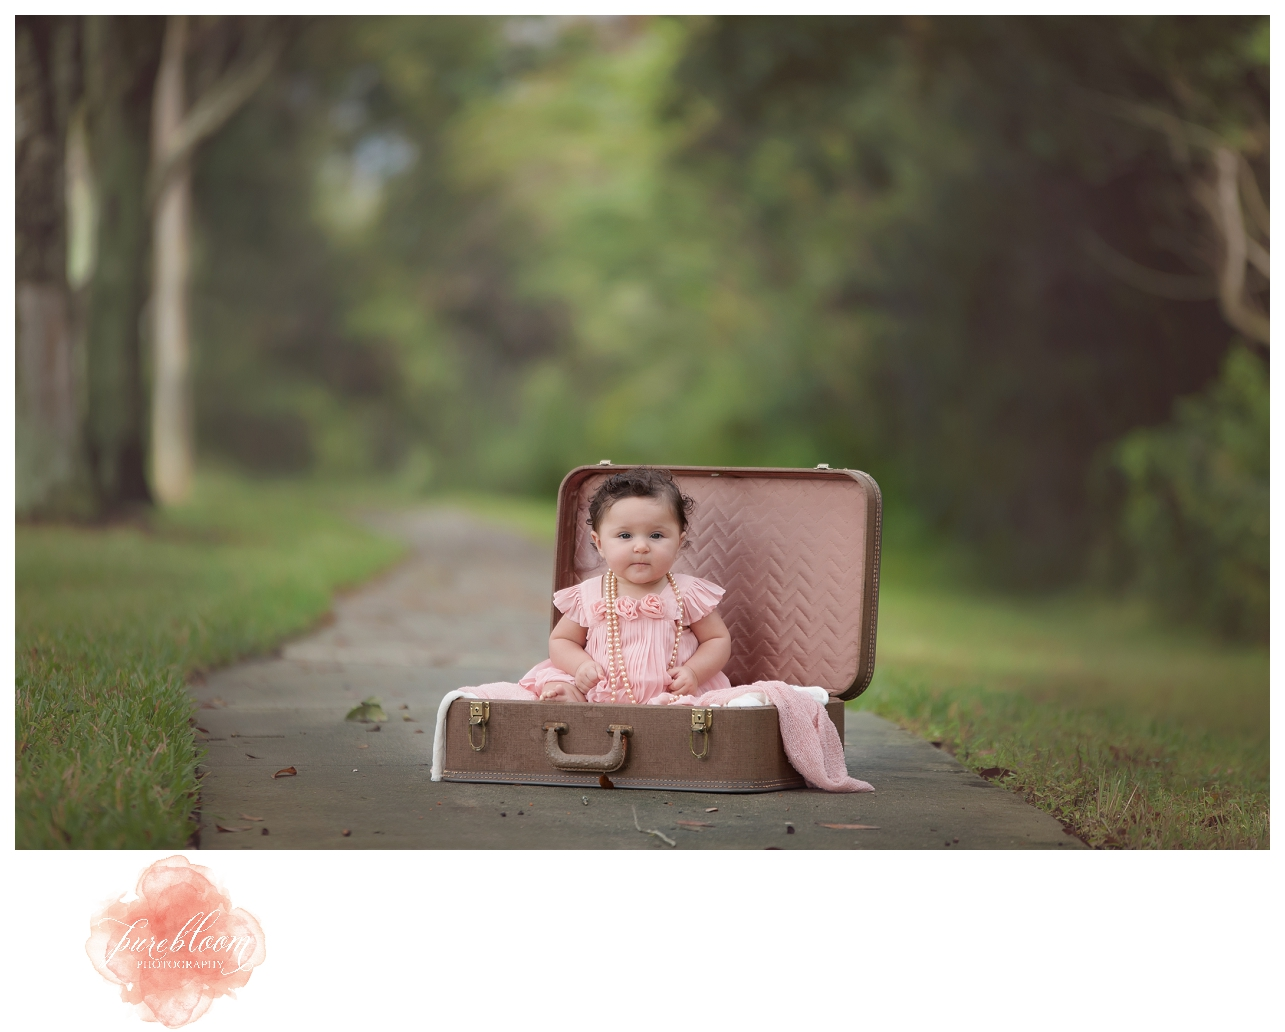 Gwyneth 6 month session | Pure Bloom Photography | Tampa Child Photographer